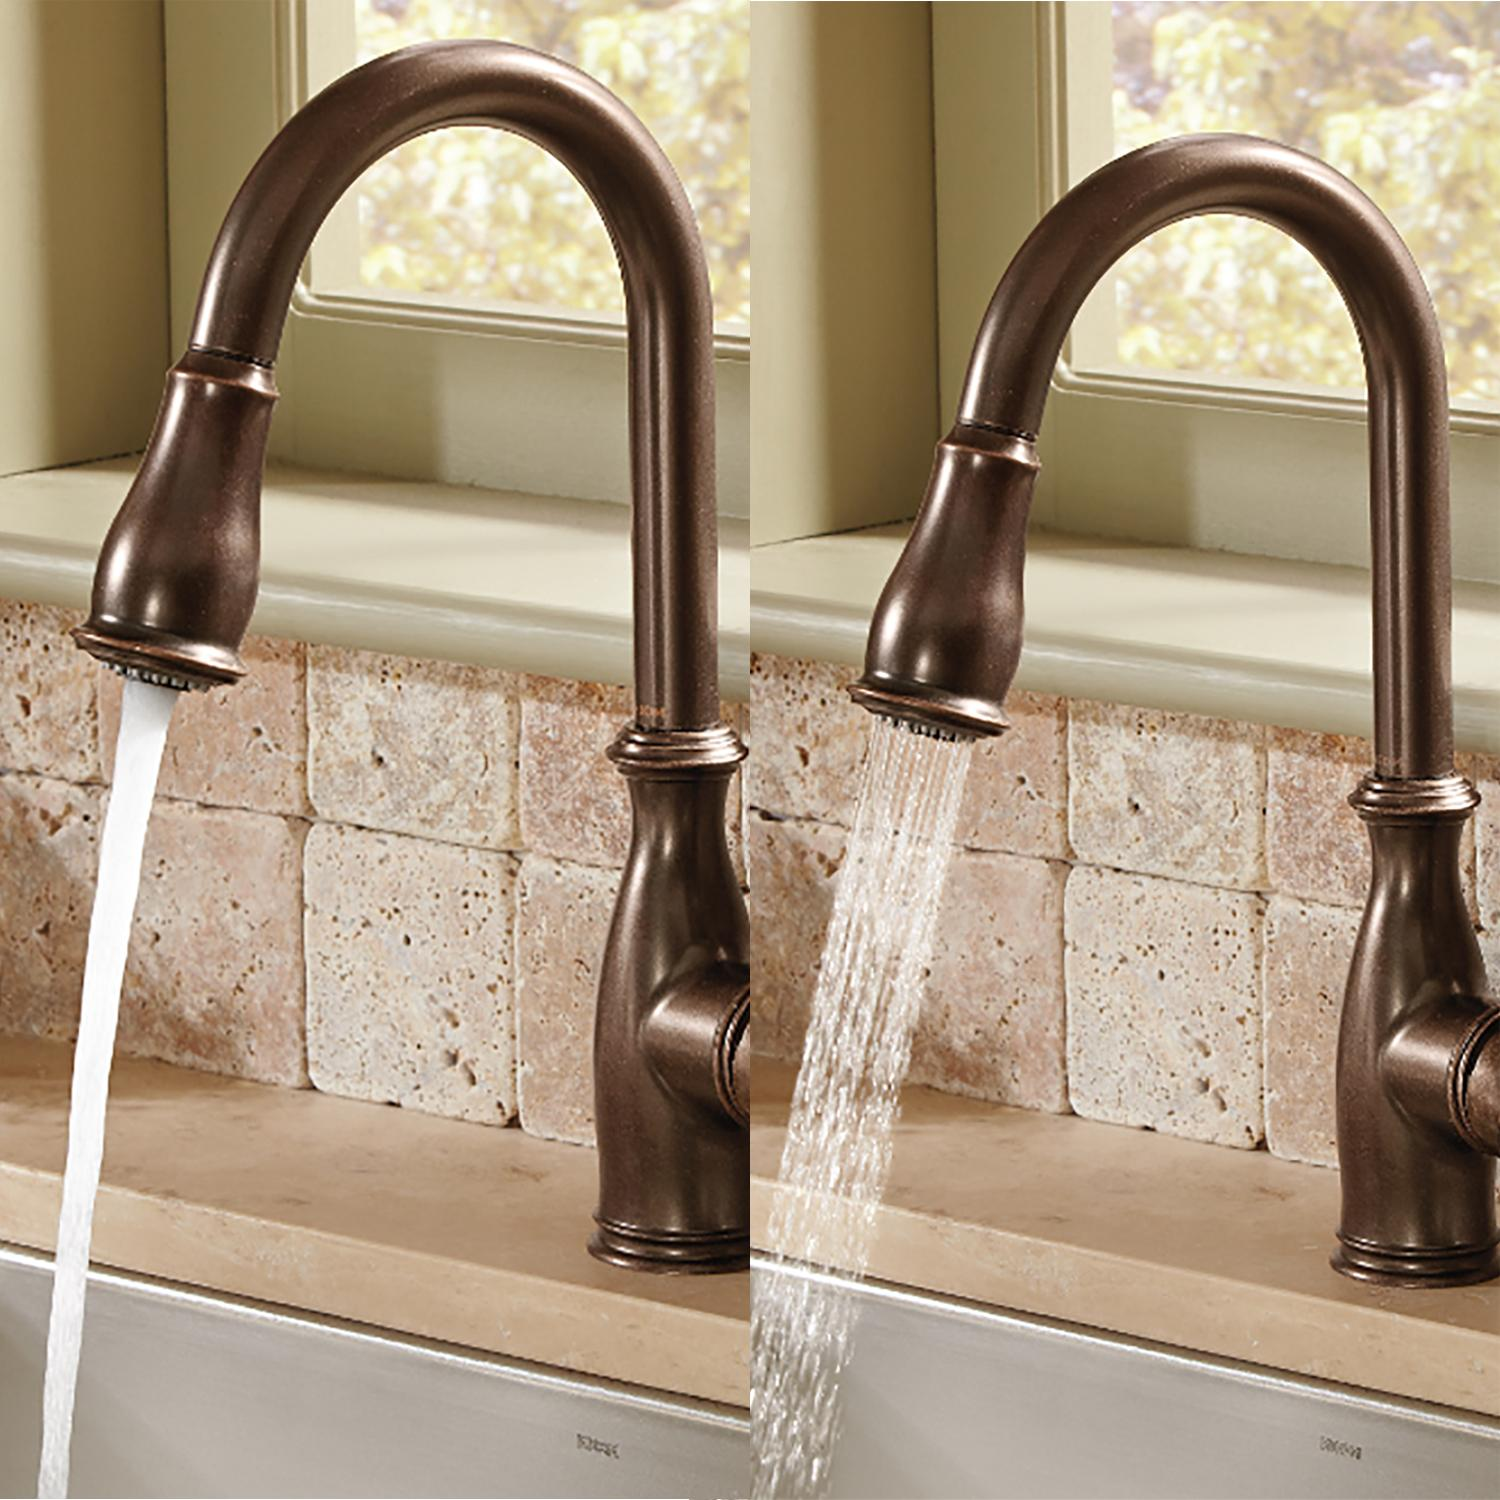 Moen Brantford One Handle High Arc Pulldown Kitchen Faucet